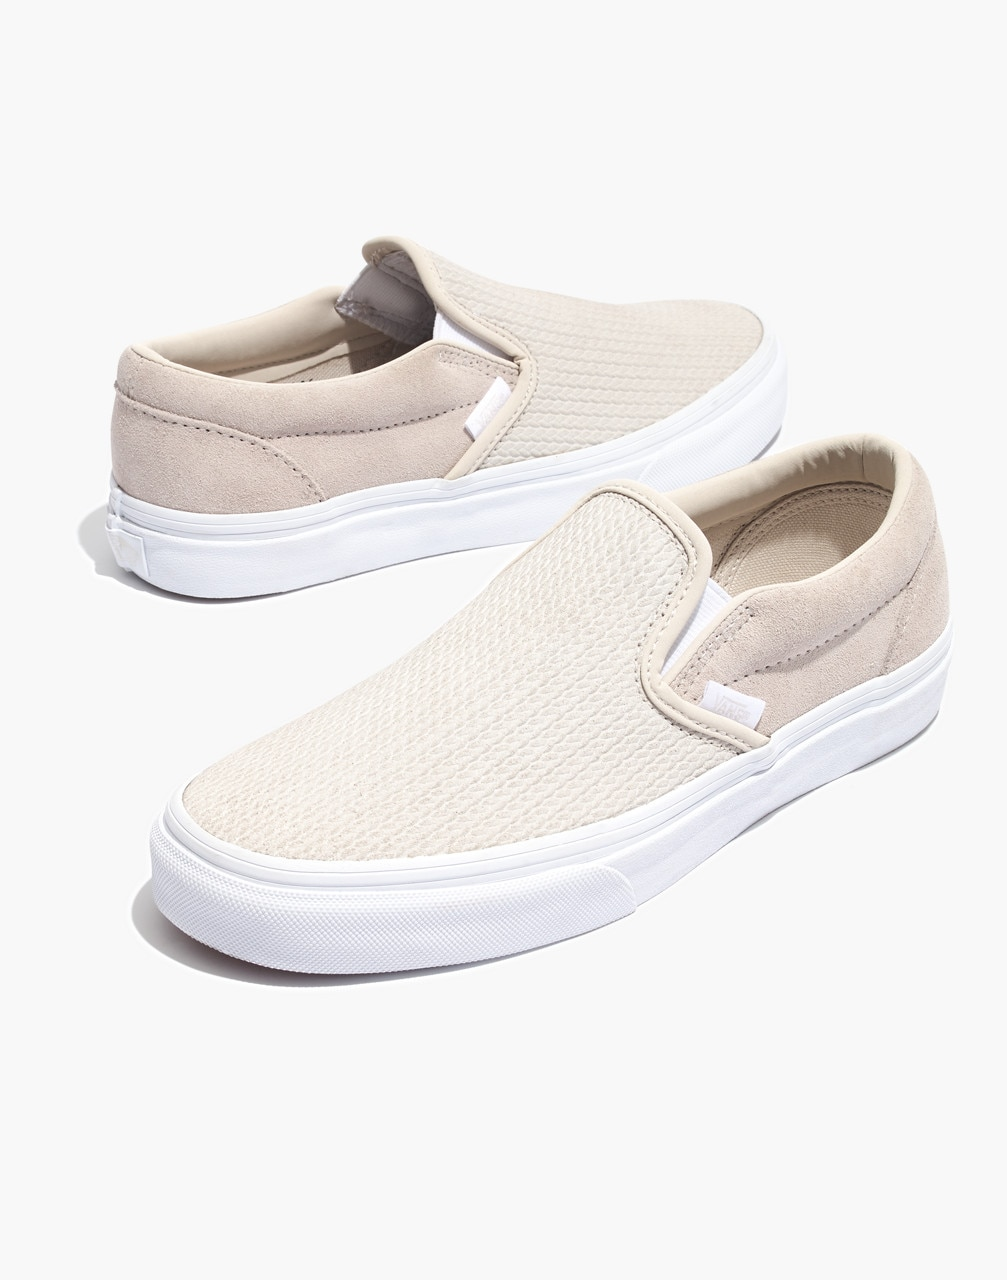 1338a908094 Vans® Unisex Classic Slip-On Sneakers in Moonbeam Suede | *Apparel ...